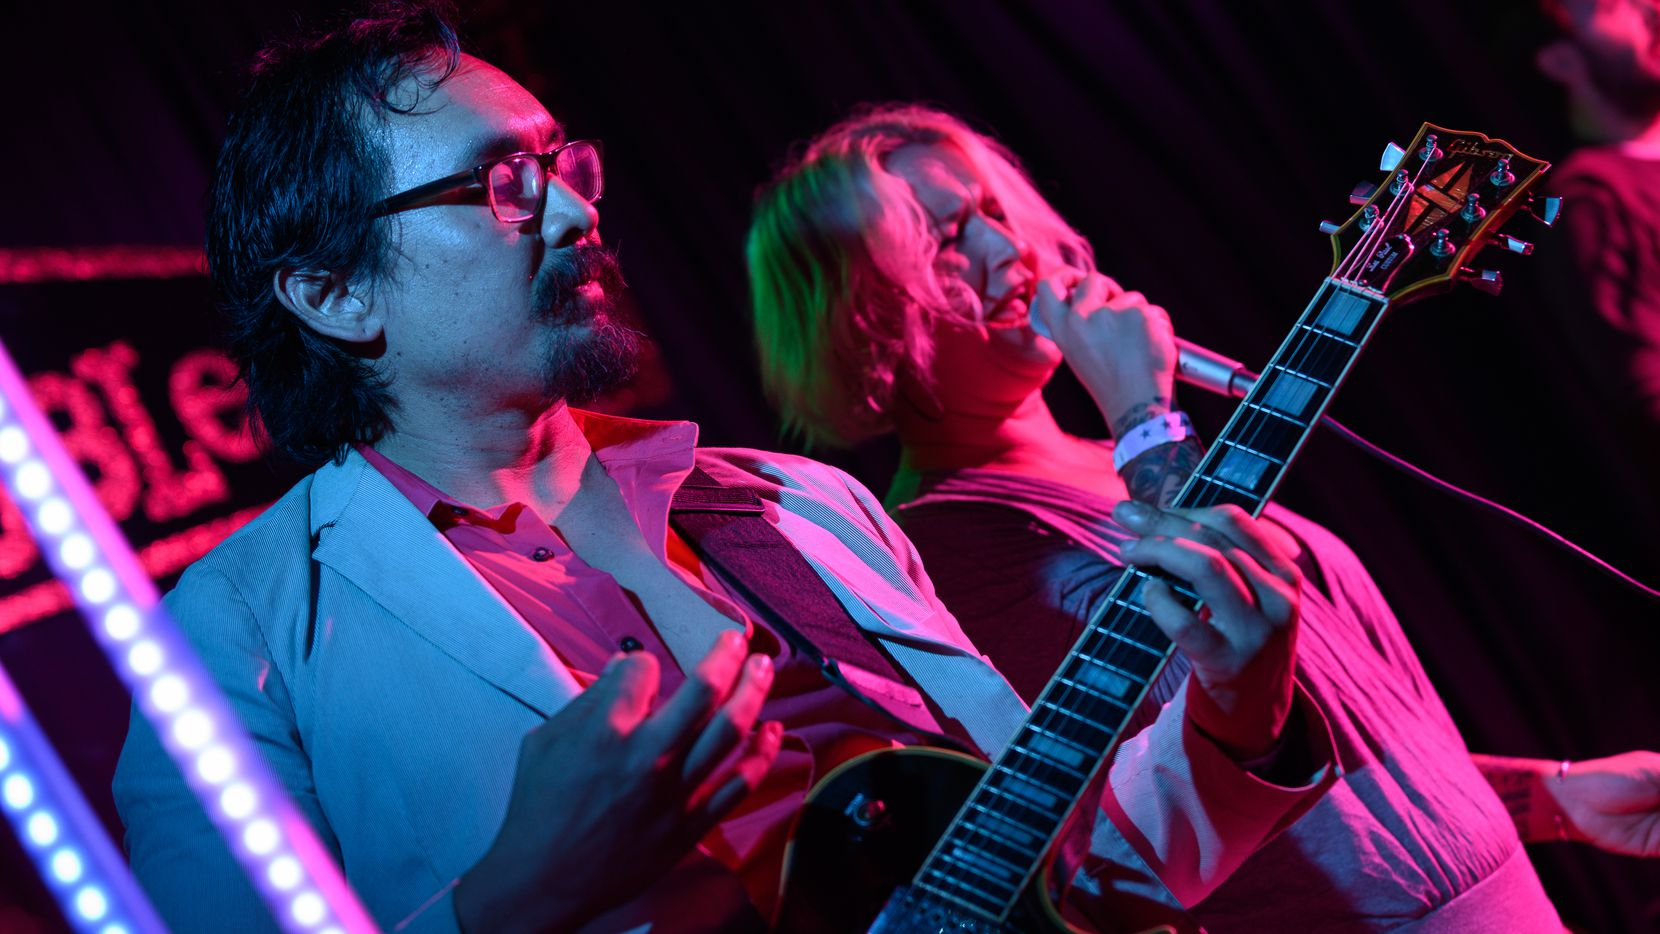 The Teen Wolves, an '80s tribute band, performed at Doublewide in Dallas in September.